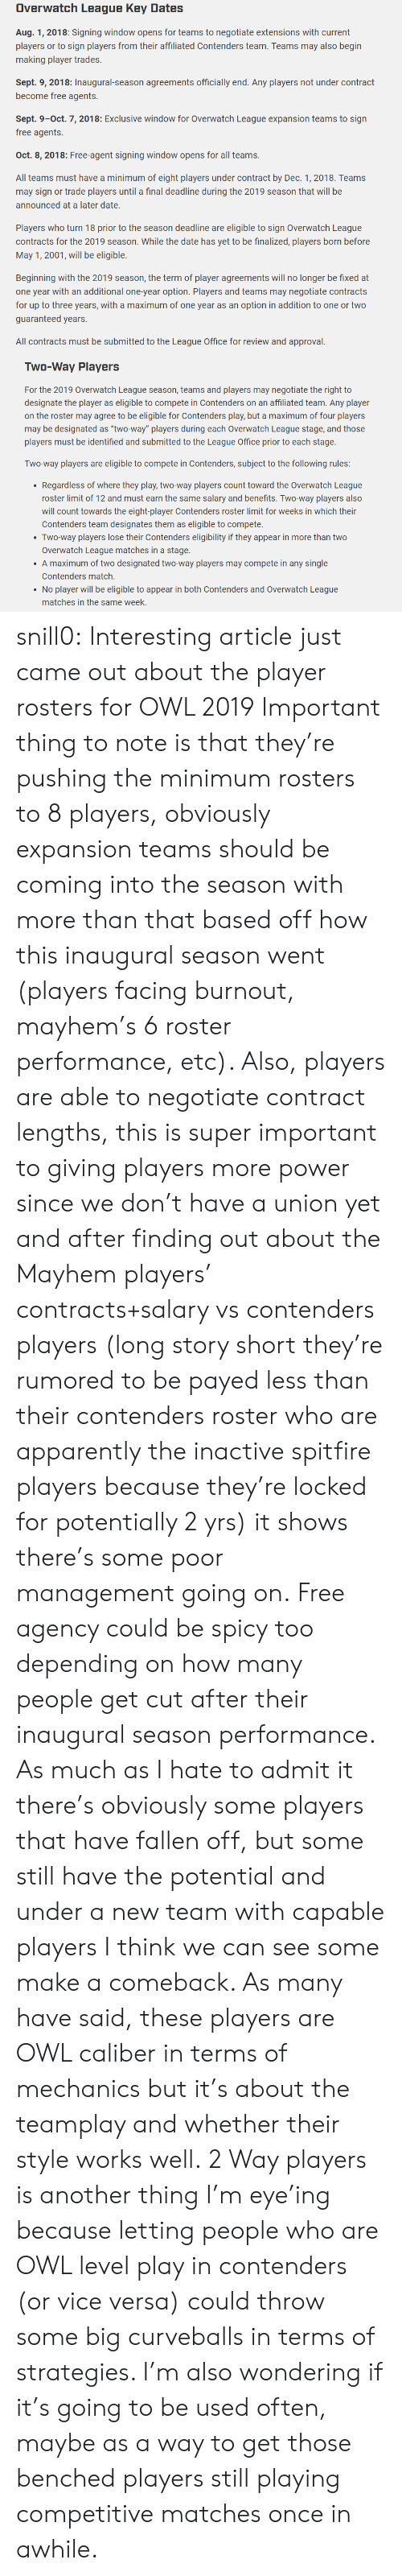 """May 1: Overwatch League Key Dates  Aug. 1, 2018: Signing window opens for teams to negotiate extensions with current  players or to sign players from their affiliated Contenders team. Teams may also begin  making player trades  Sept. 9, 2018: Inaugural-season agreements officially end. Any players not under contract  become free agents.  Sept. 9-0ct. 7, 2018: Exclusive window for Overwatch League expansion teams to sign  free agents.  Oct. 8, 2018: Free-agent signing window opens for all teams.  All teams must have a minimum of eight players under contract by Dec. 1,2018. Teams  may sign or trade players until a final deadline during the 2019 season that will be  announced at a later date.  Players who turn 18 prior to the season deadline are eligible to sign Overwatch League  contracts for the 2019 season. While the date has yet to be finalized, players born before  May 1, 2001, will be eligible.  Beginning with the 2019 season, the term of player agreements will no longer be fixed at  one year with an additional one-year option. Players and teams may negotiate contracts  for up to three years, with a maximum of one year as an option in addition to one or two  guaranteed years  All contracts must be submitted to the League Office for review and approval.   Two-Way Players  For the 2019 Overwatch League season, teams and players may negotiate the right to  designate the player as eligible to compete in Contenders on an affiliated team. Any player  on the roster may agree to be eligible for Contenders play, but a maximum of four players  may be designated as """"two-way"""" players during each Overwatch League stage, and those  players must be identified and submitted to the League Office prior to each stage.  Two way players are eligible to compete in Contenders, subject o the ollowing ules  Regardless of where they play, two-way players count toward the Overwatch League  roster limit of 12 and must earn the same salary and benefits. Two-way players also  will count towar"""